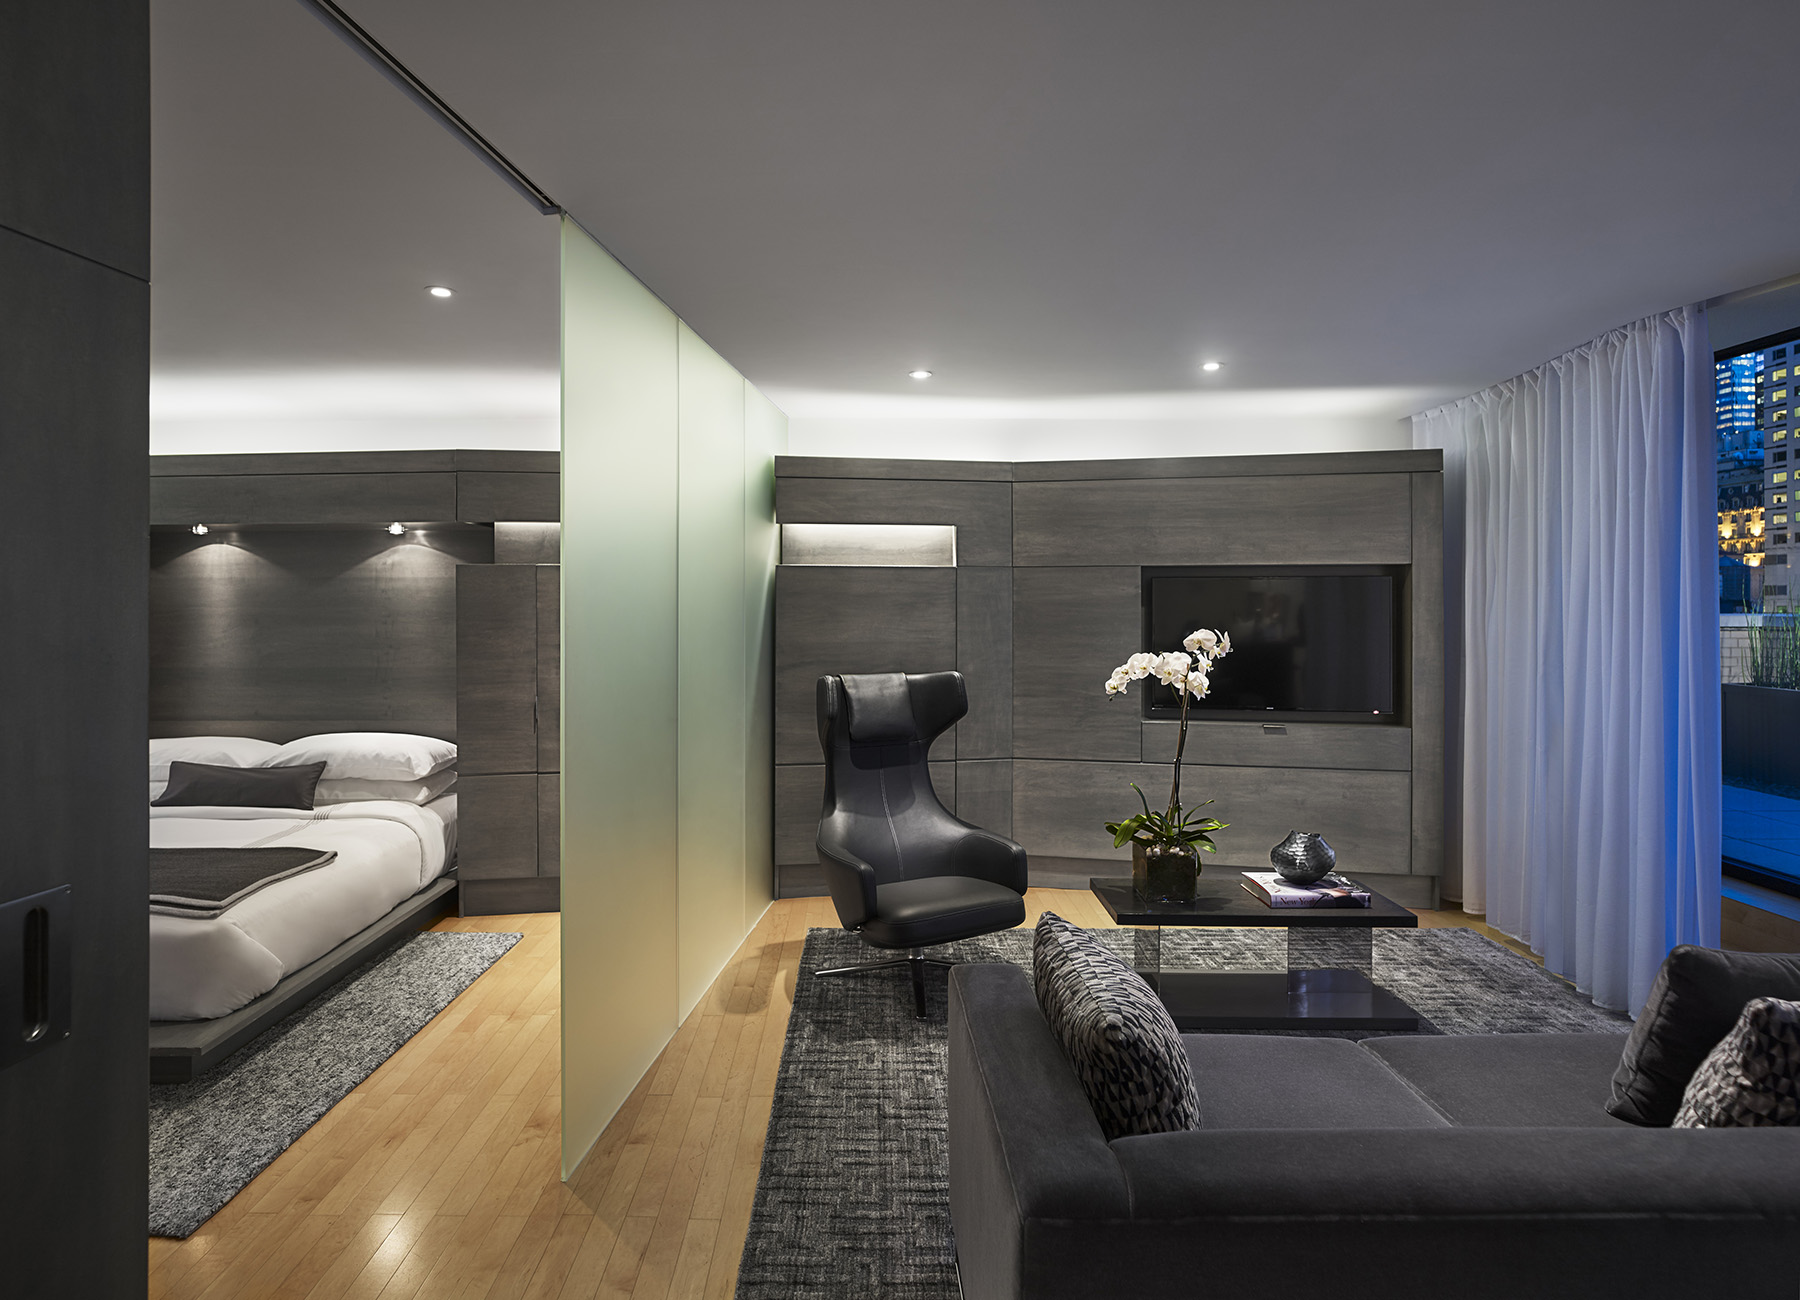 AKA Central Park sky suite with modern bedroom furniture and living room space